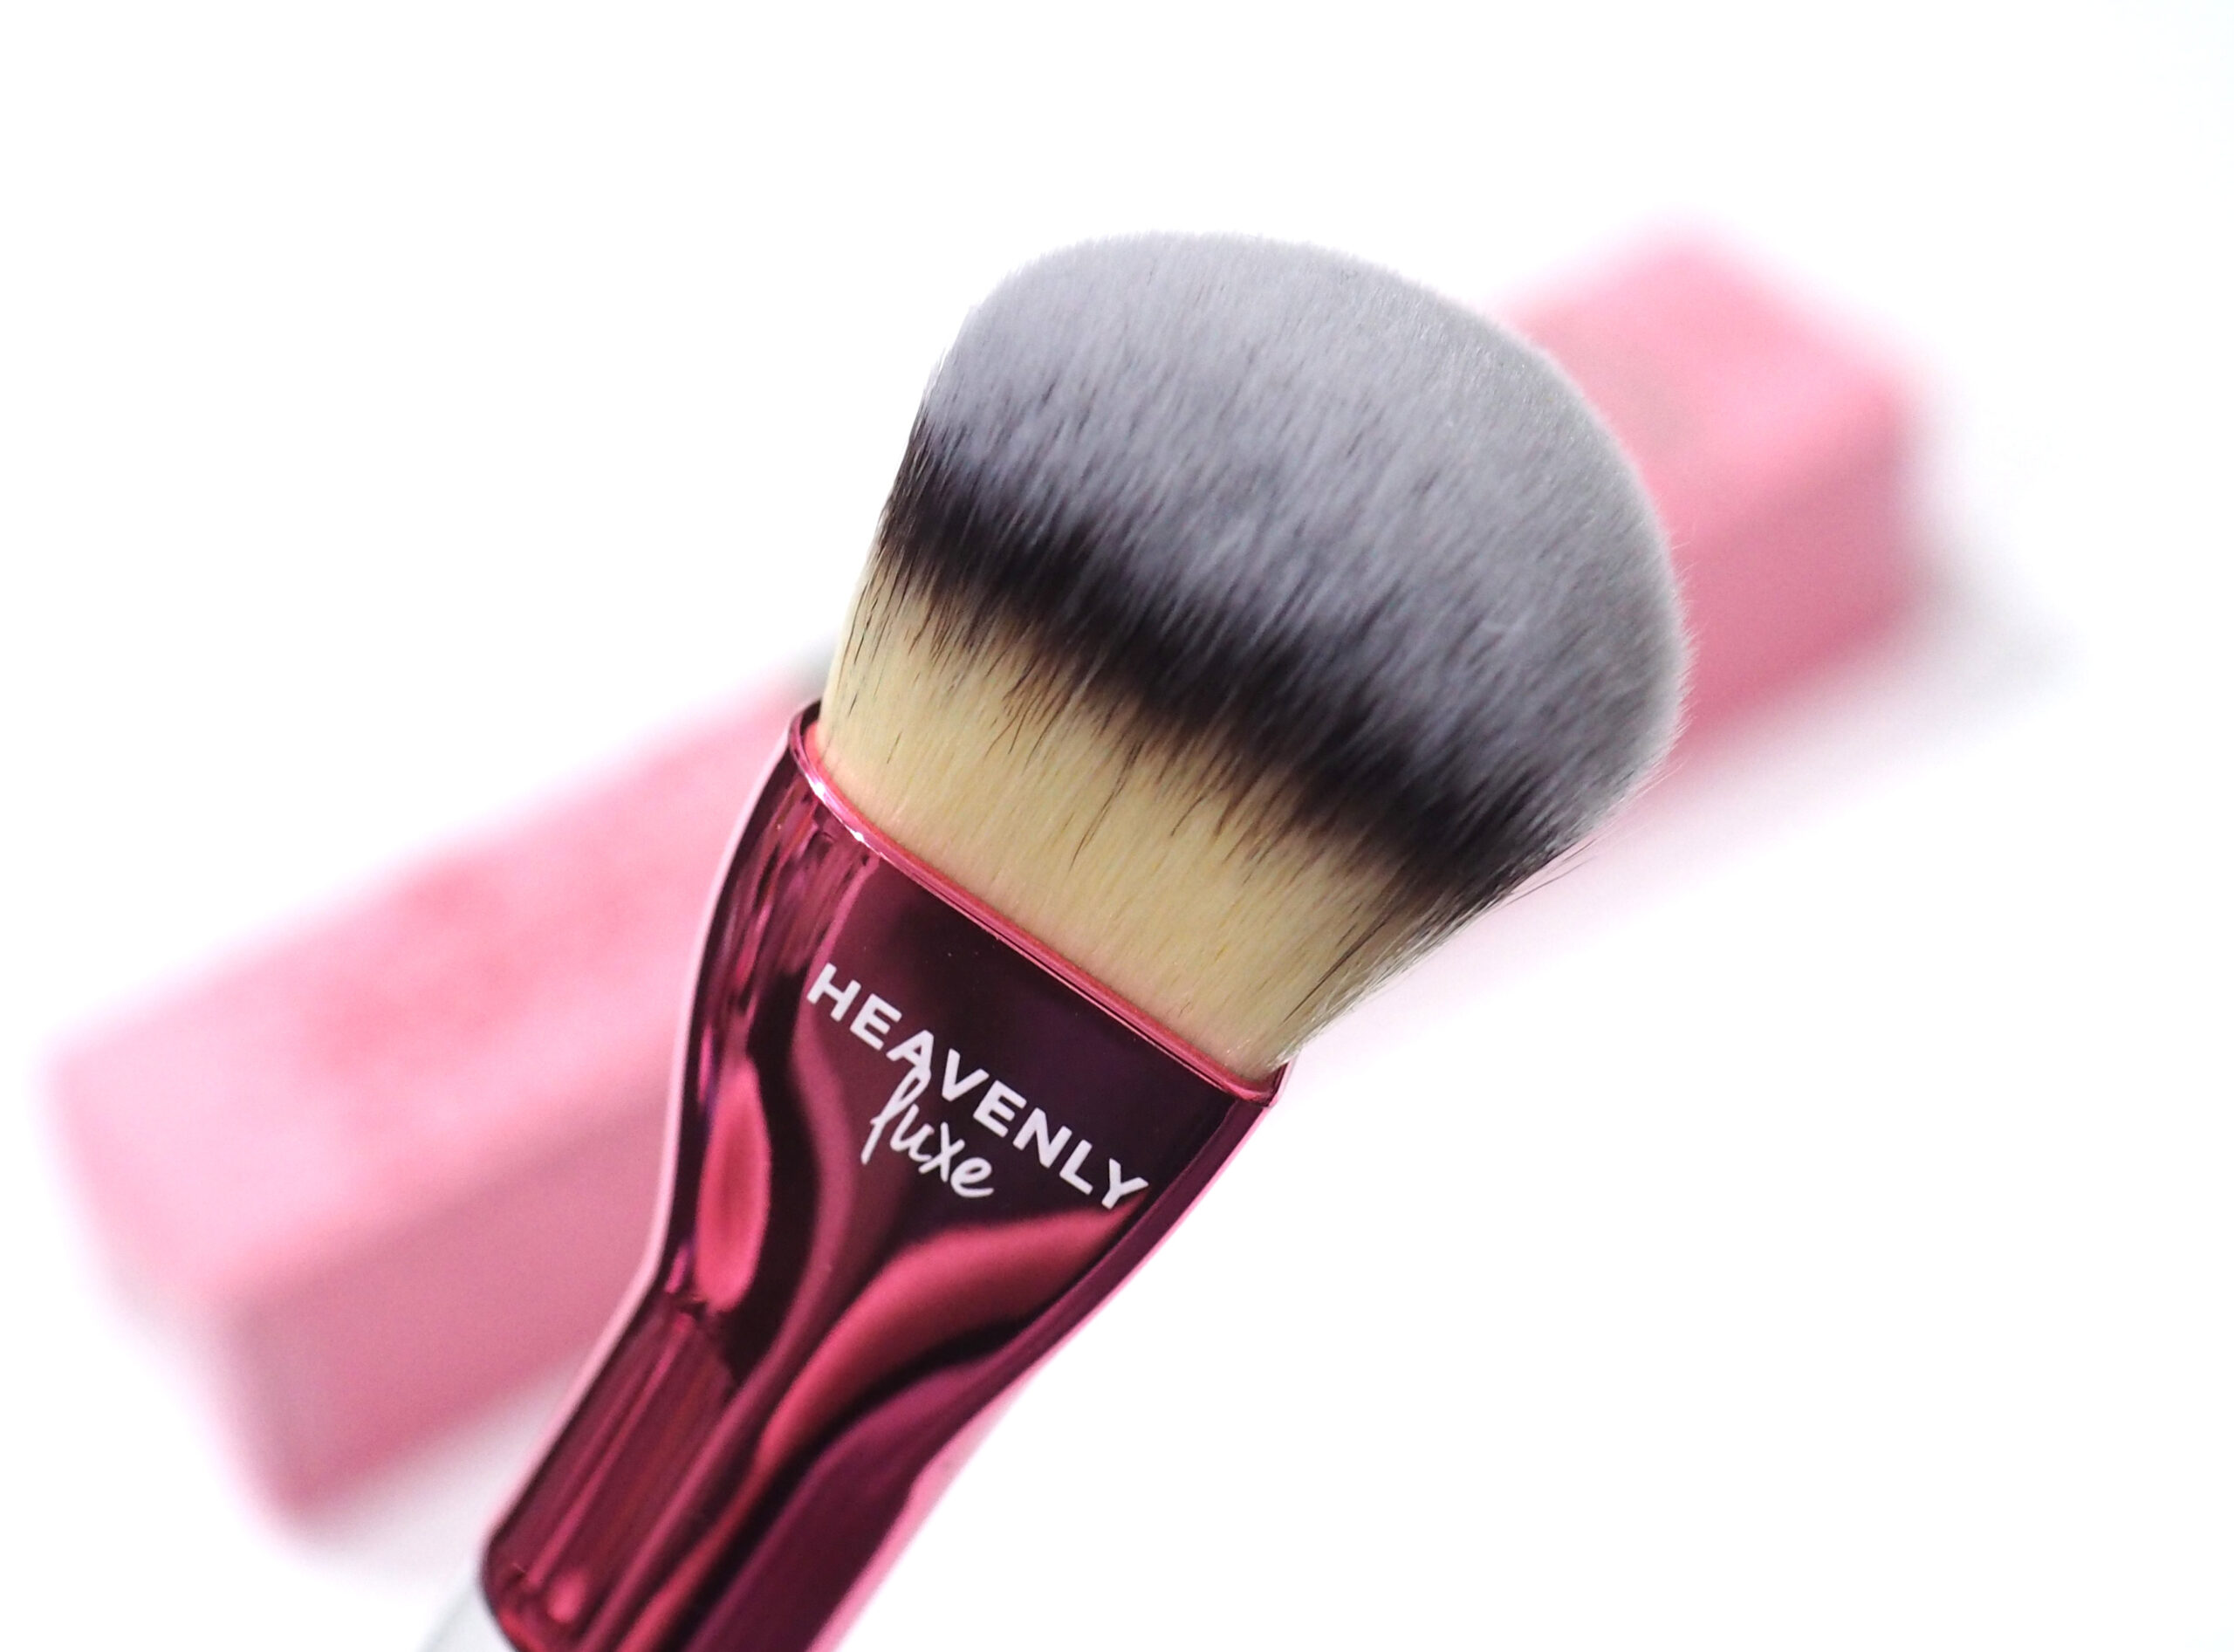 IT Cosmetics Love Is The Foundation Brush Review